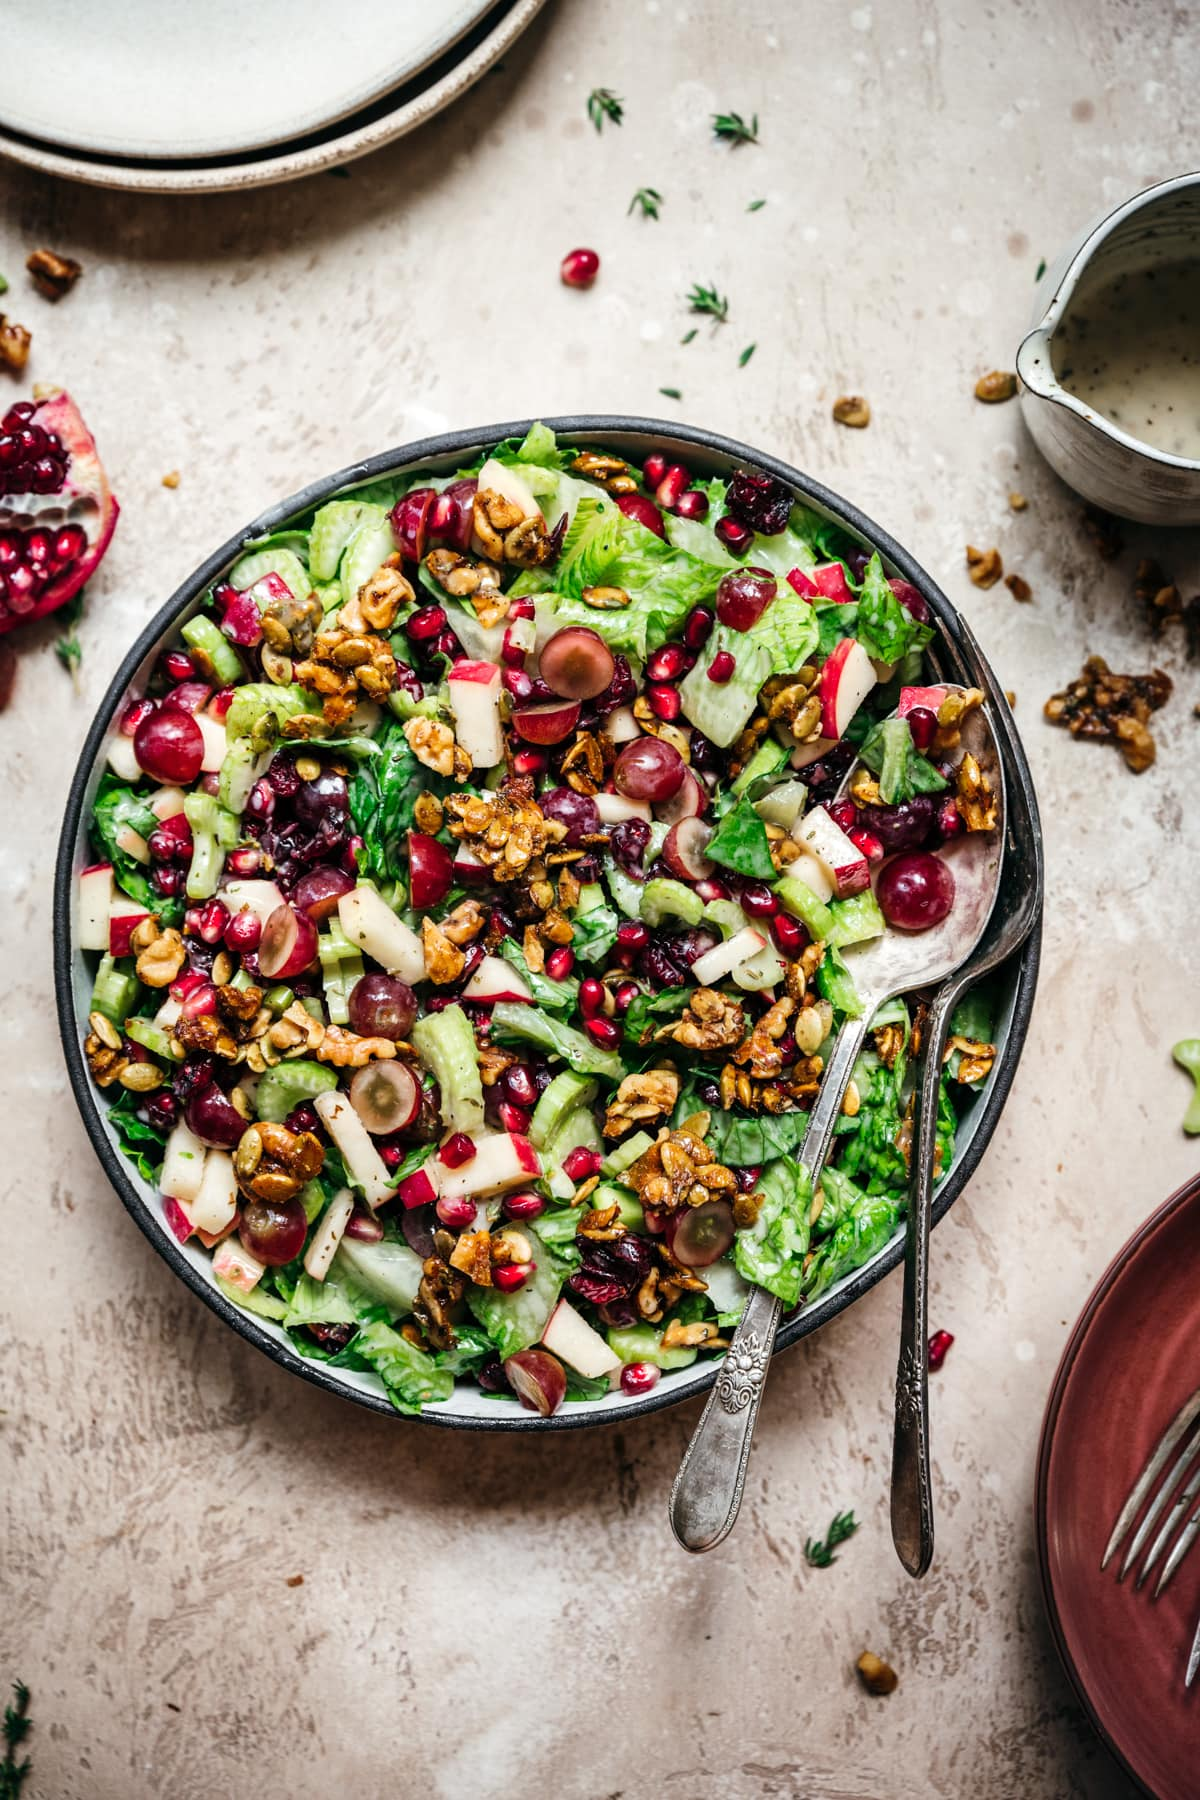 overhead view of vegan waldorf salad with walnut brittle and pomegranate in a bowl with serving utensils.